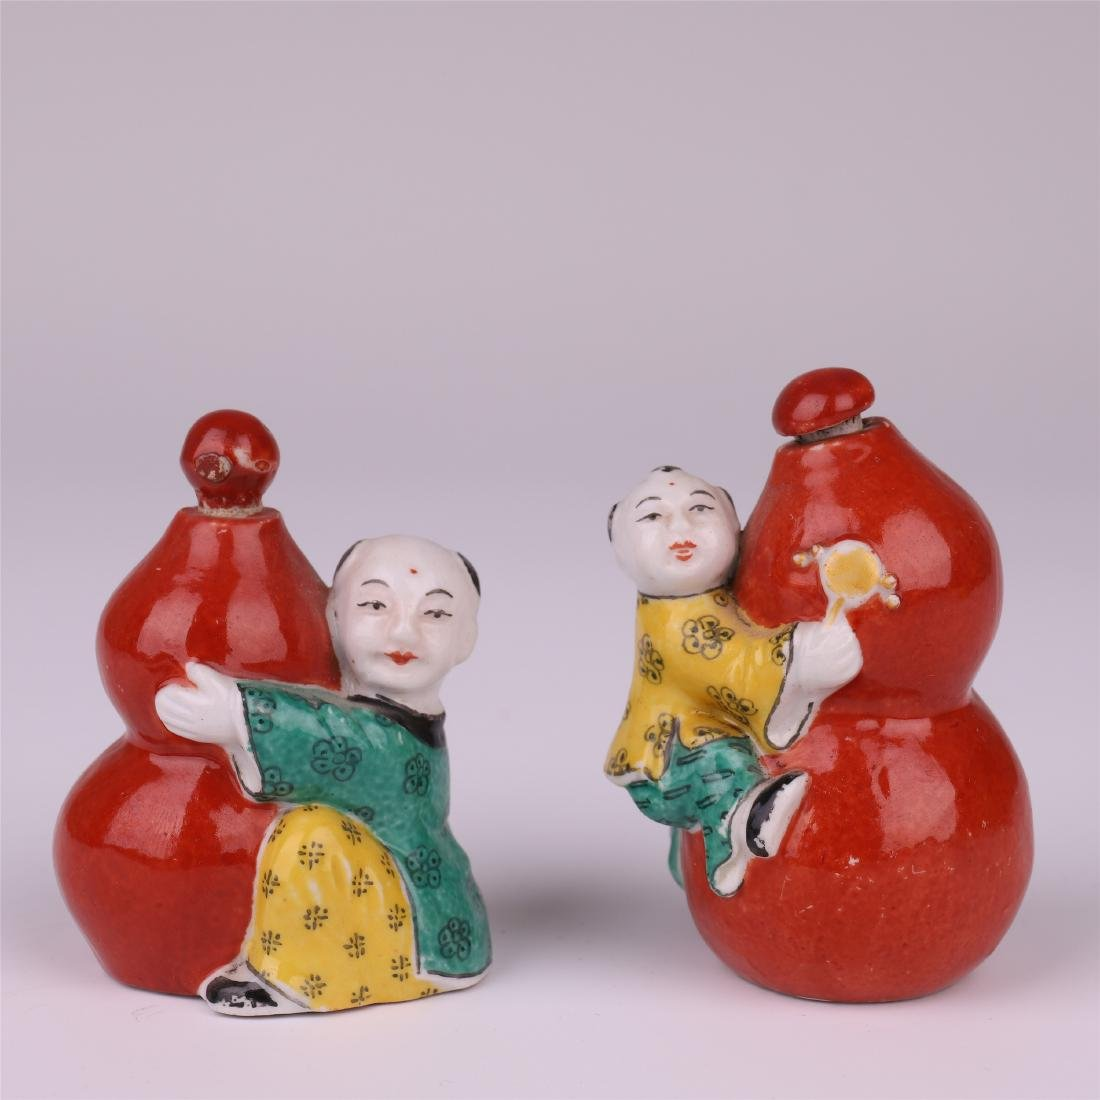 CHINESE PORCELAIN FAMILLE ROSE RED GLAZED BOY GOURD